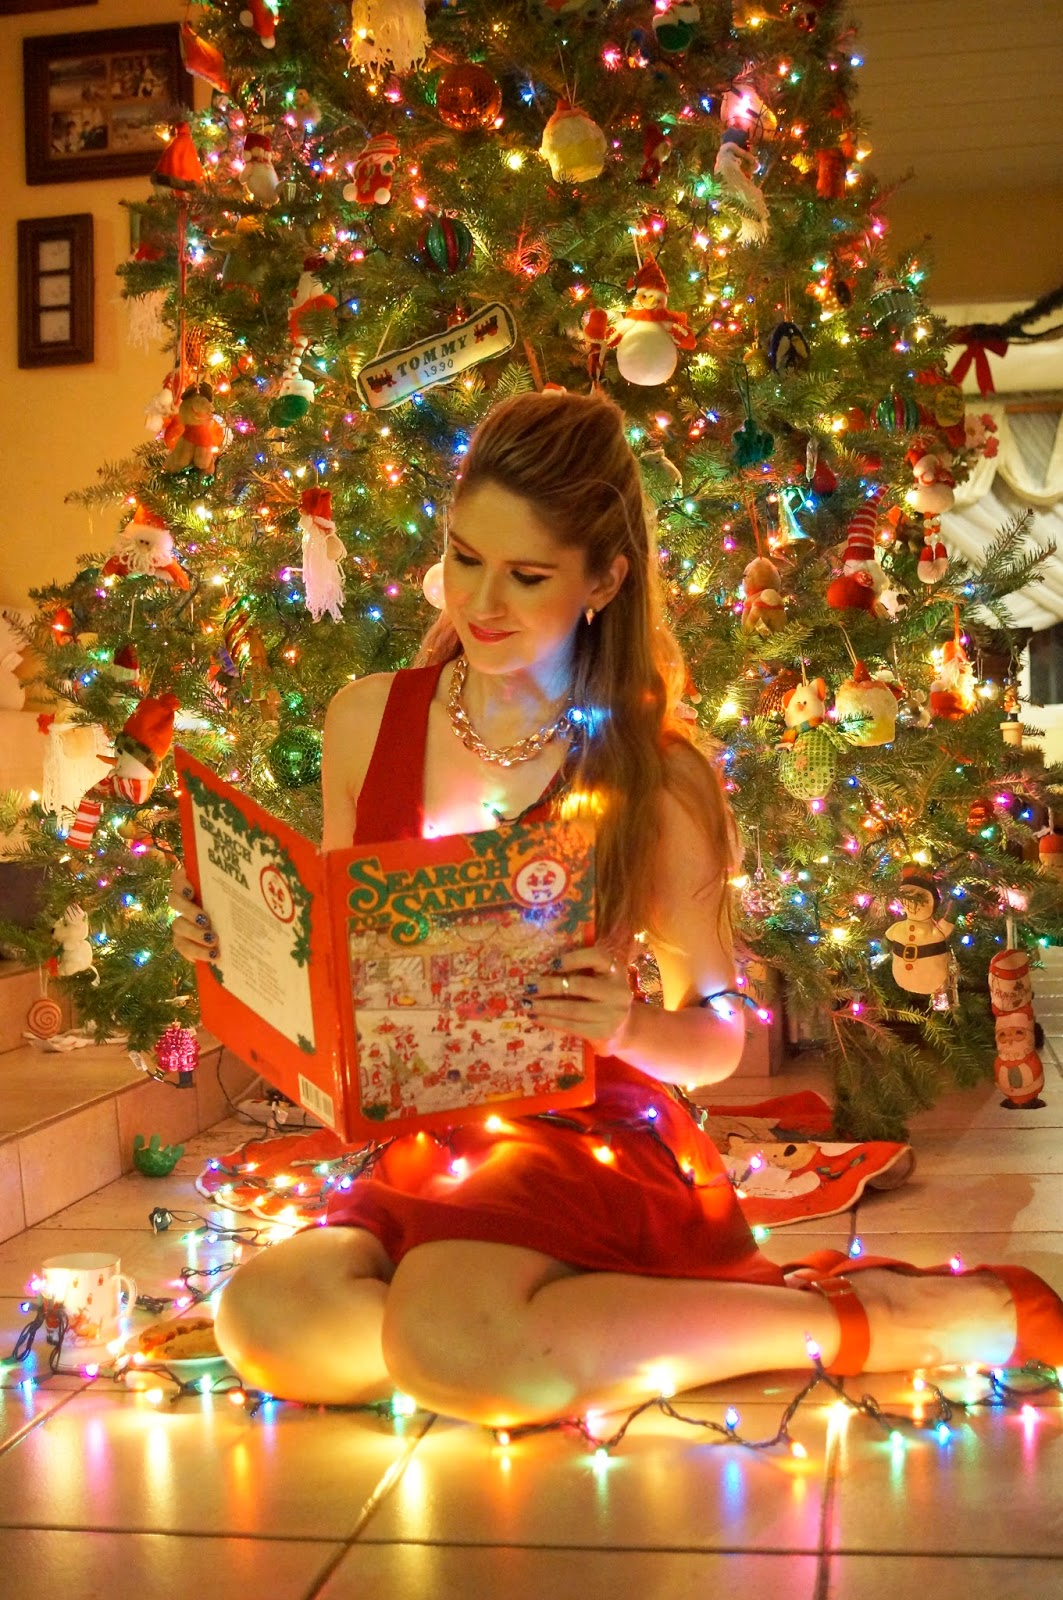 Relax and Read a Christmas Book by the tree